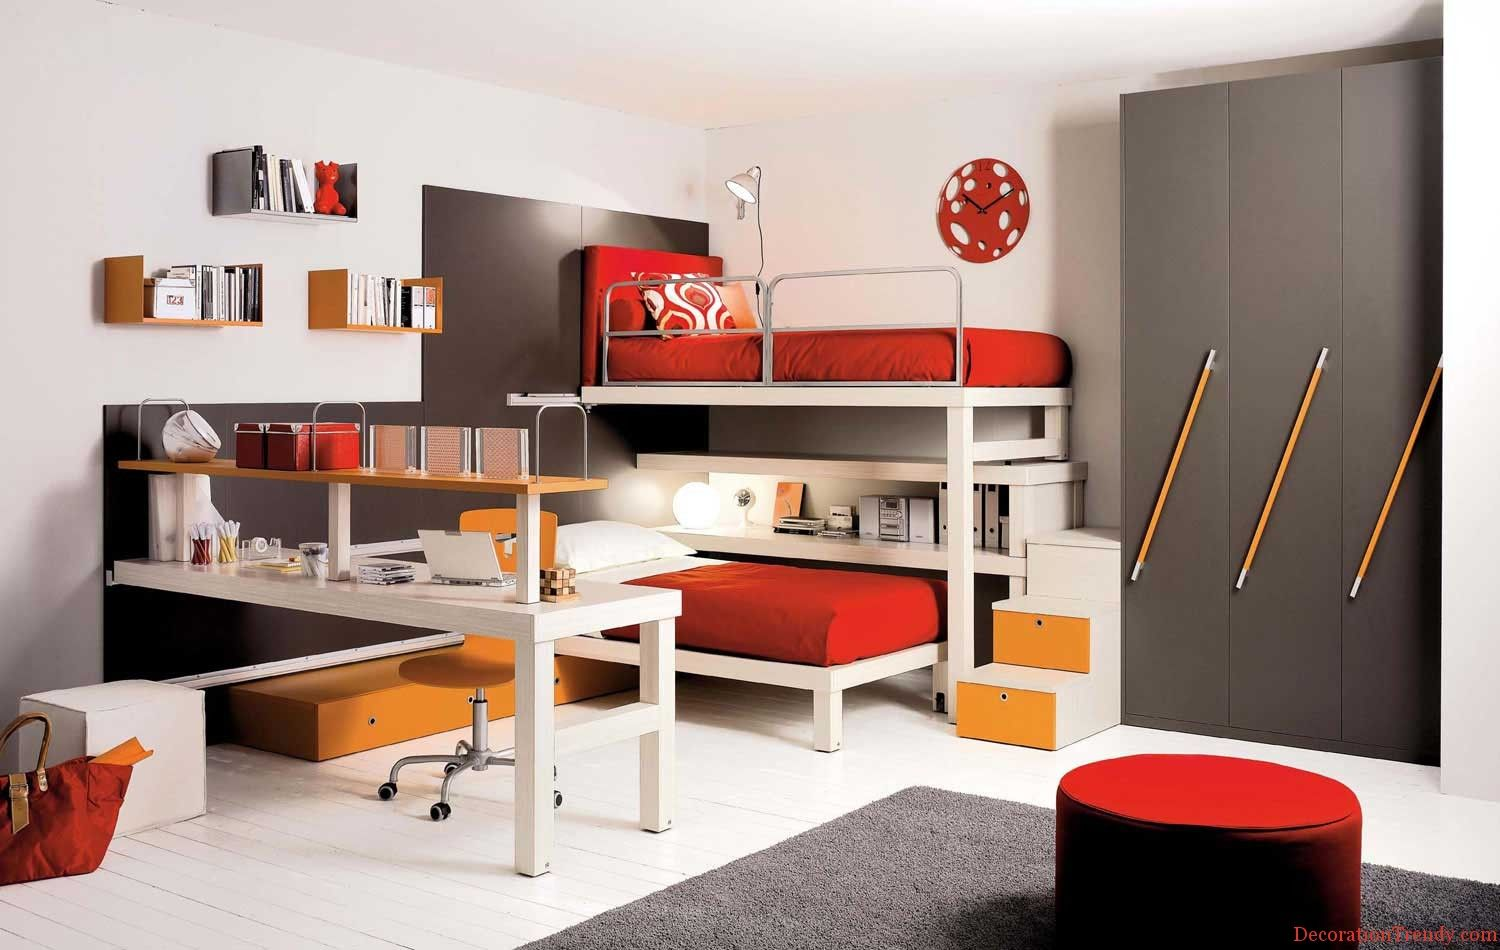 Corner loft bed ideas  lots of storage in a small space  Design  Pinterest  Of Ikea